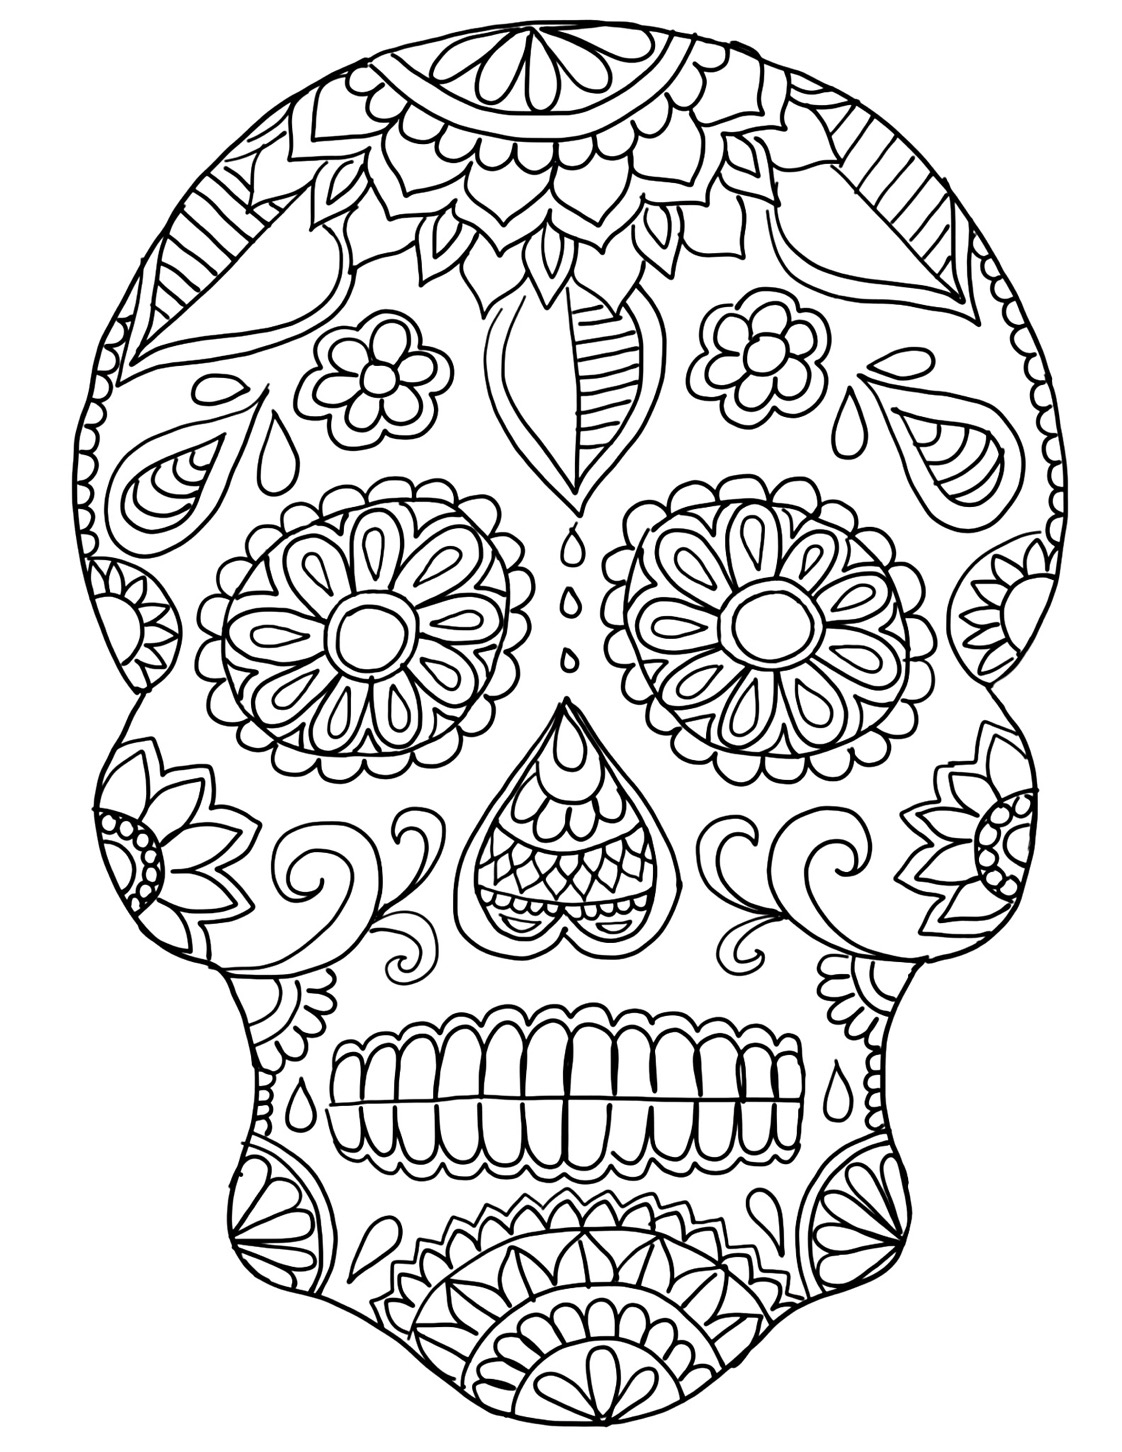 coloring skull day of the dead day of the dead coloring pages pdf at getcoloringscom of the skull day dead coloring